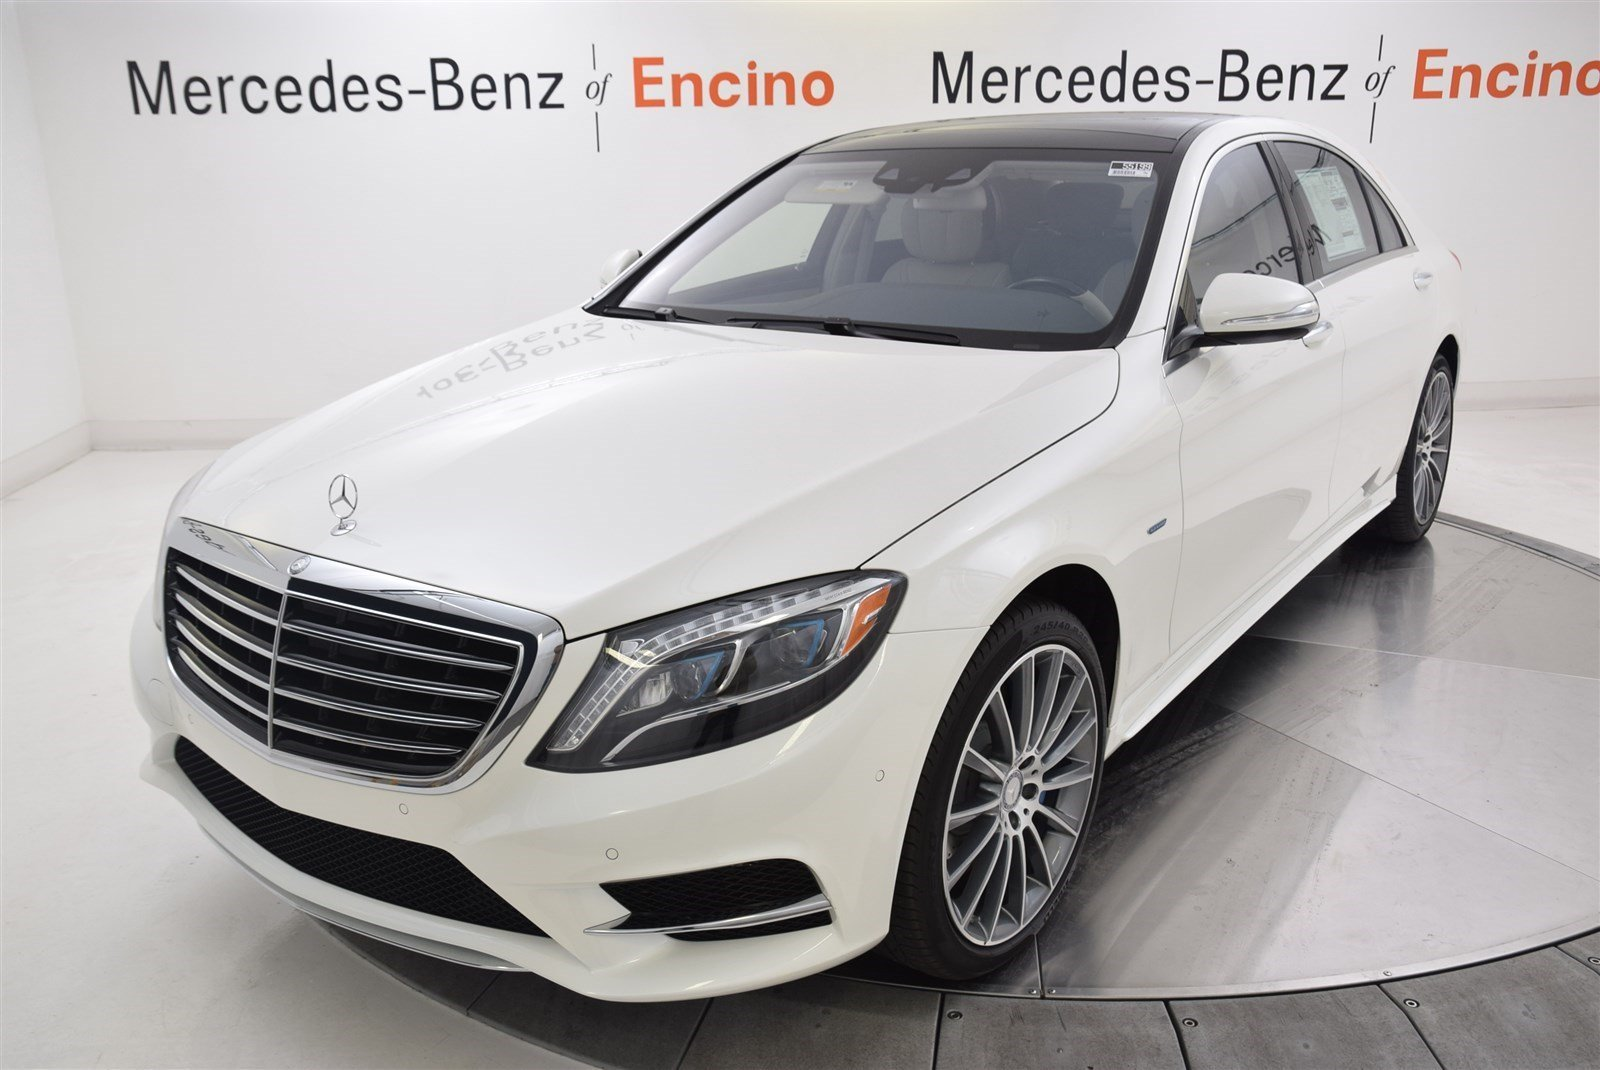 new 2017 mercedes benz s class s550e plug in hybrid sedan